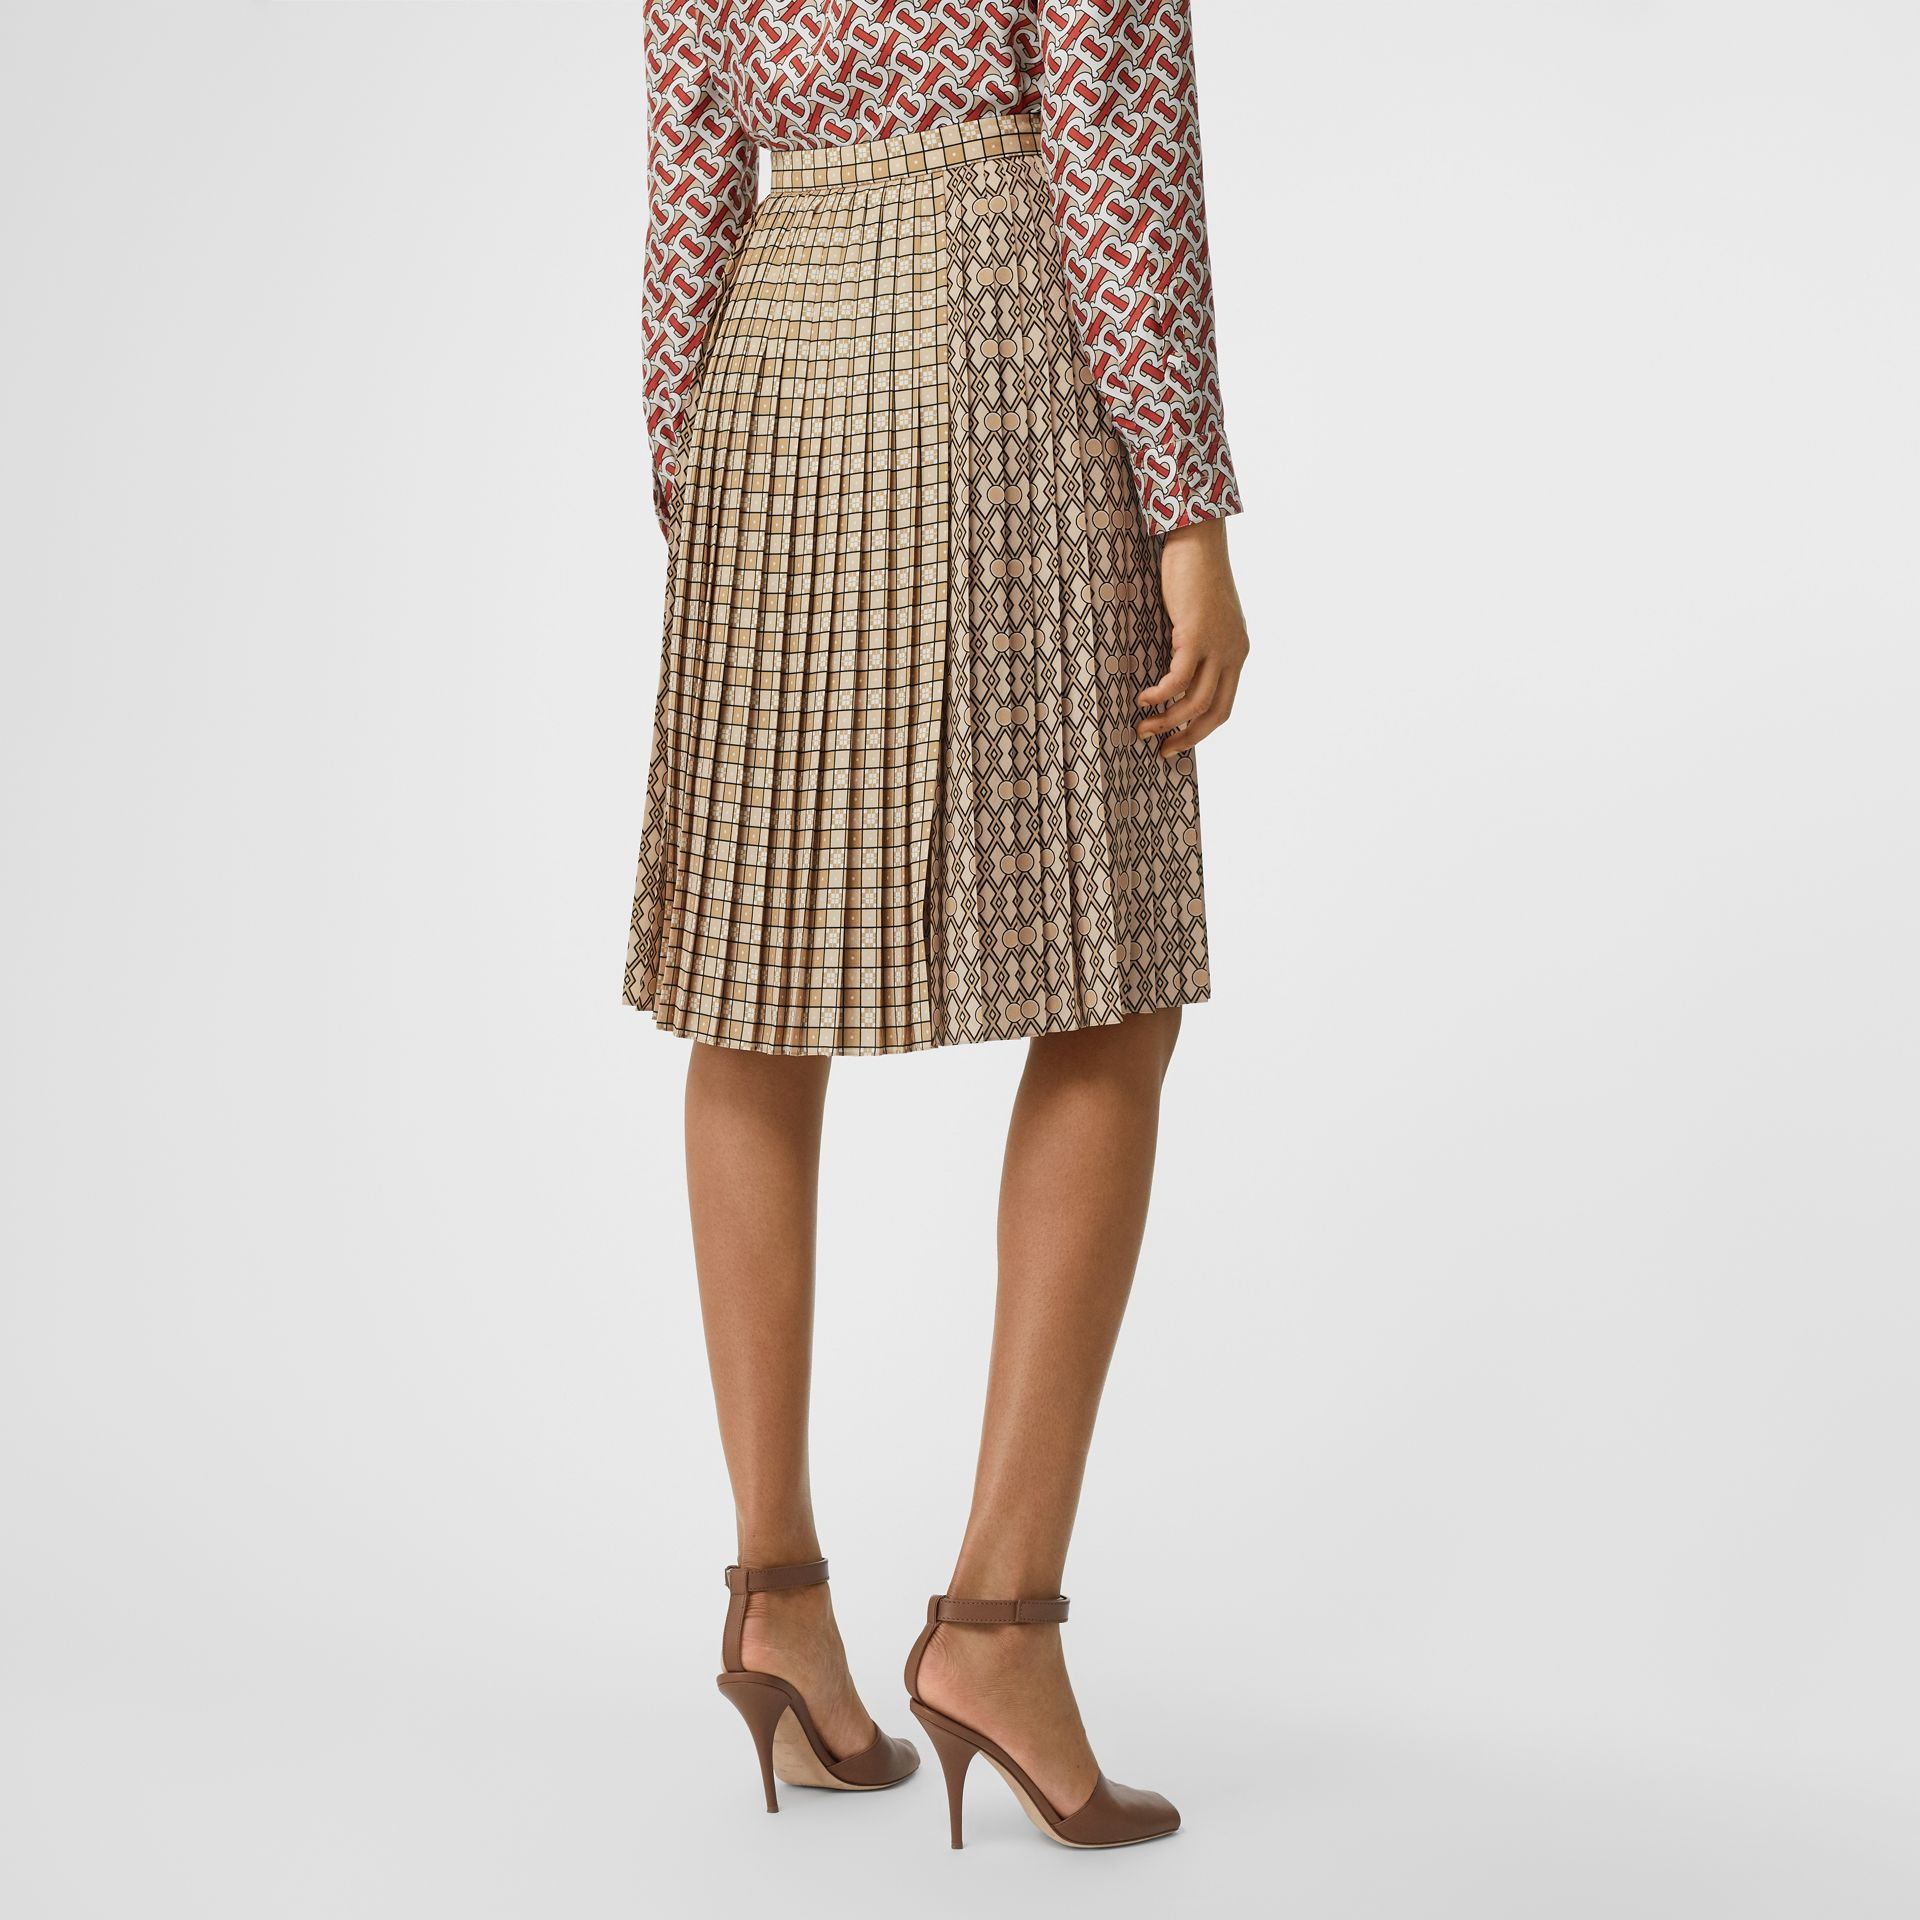 Contrast Graphic Print Pleated Skirt in Latte - Women | Burberry - gallery image 2